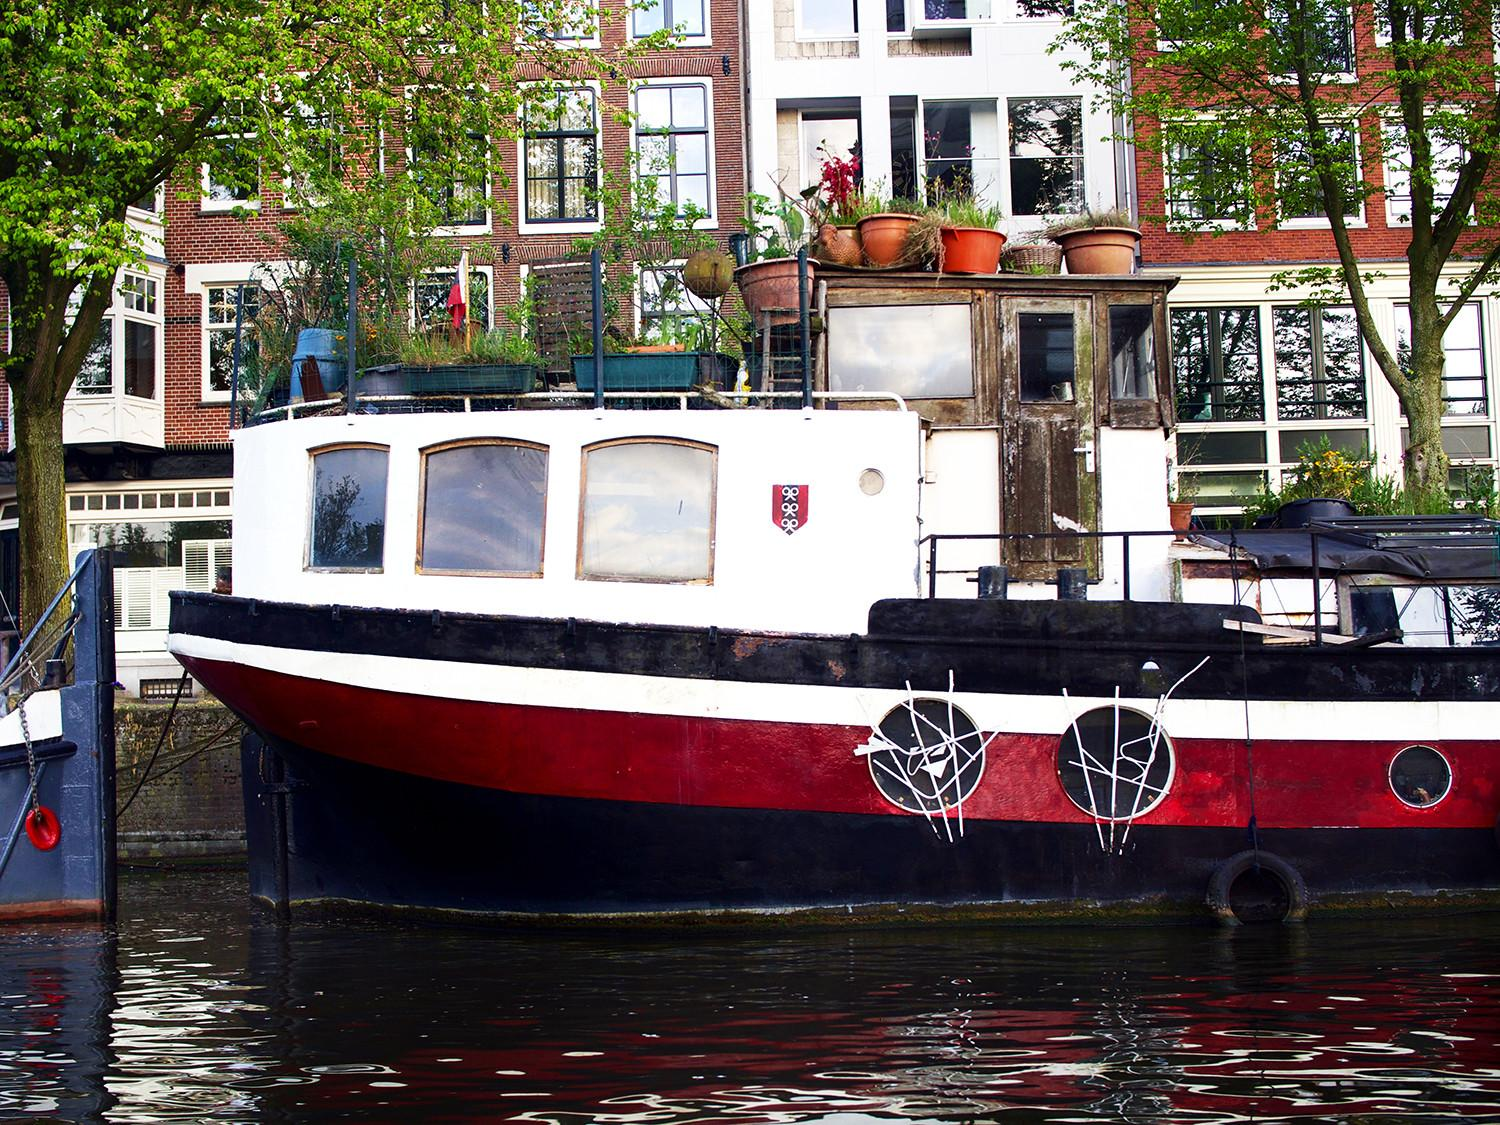 Amsterdam Canal Cruise Touristy Sounds